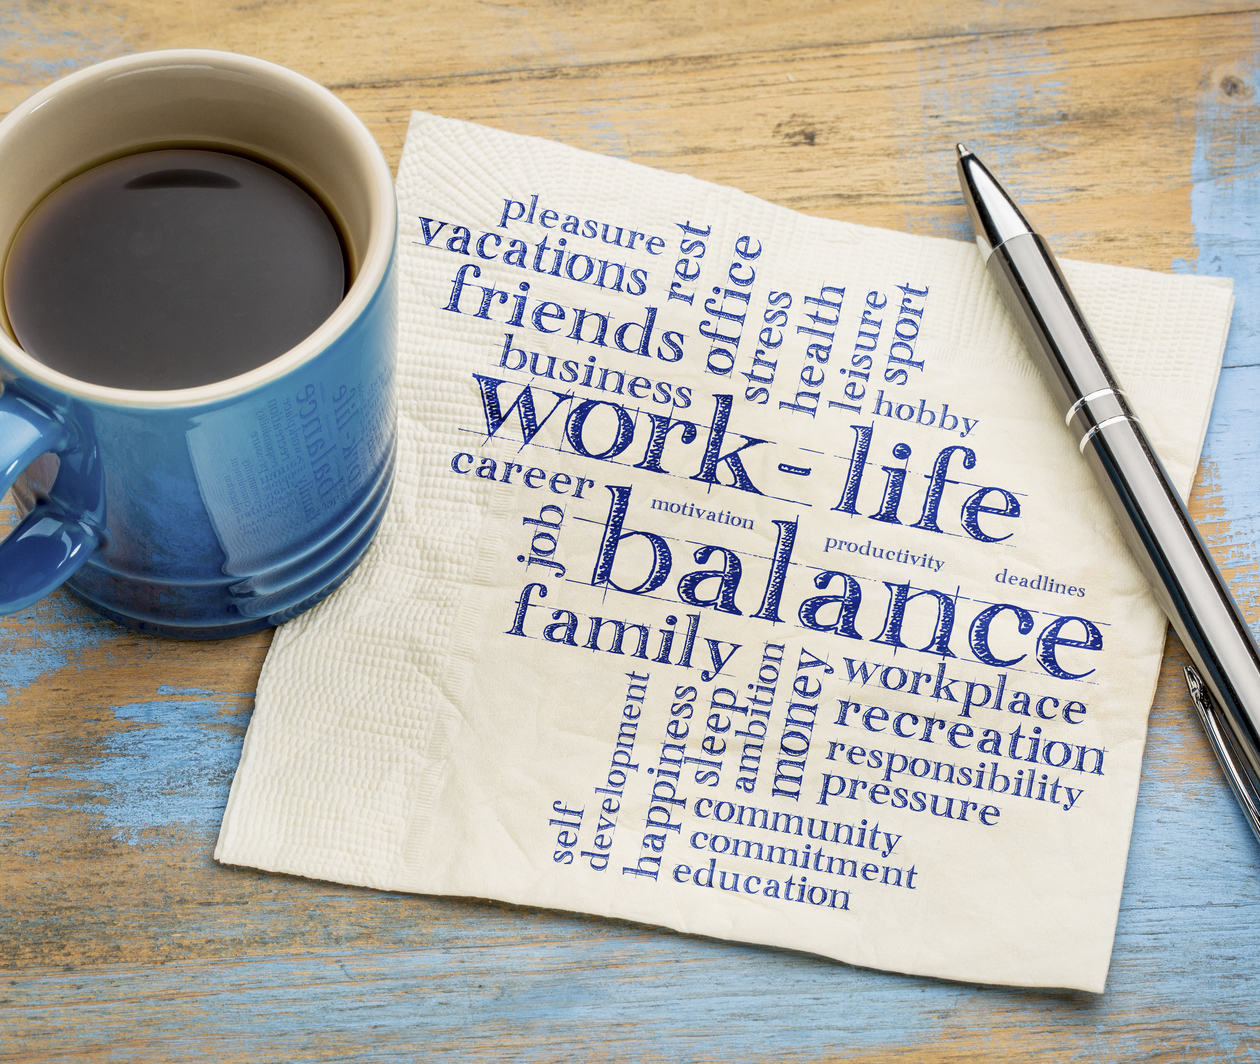 Wellbeing at Work: An Introduction